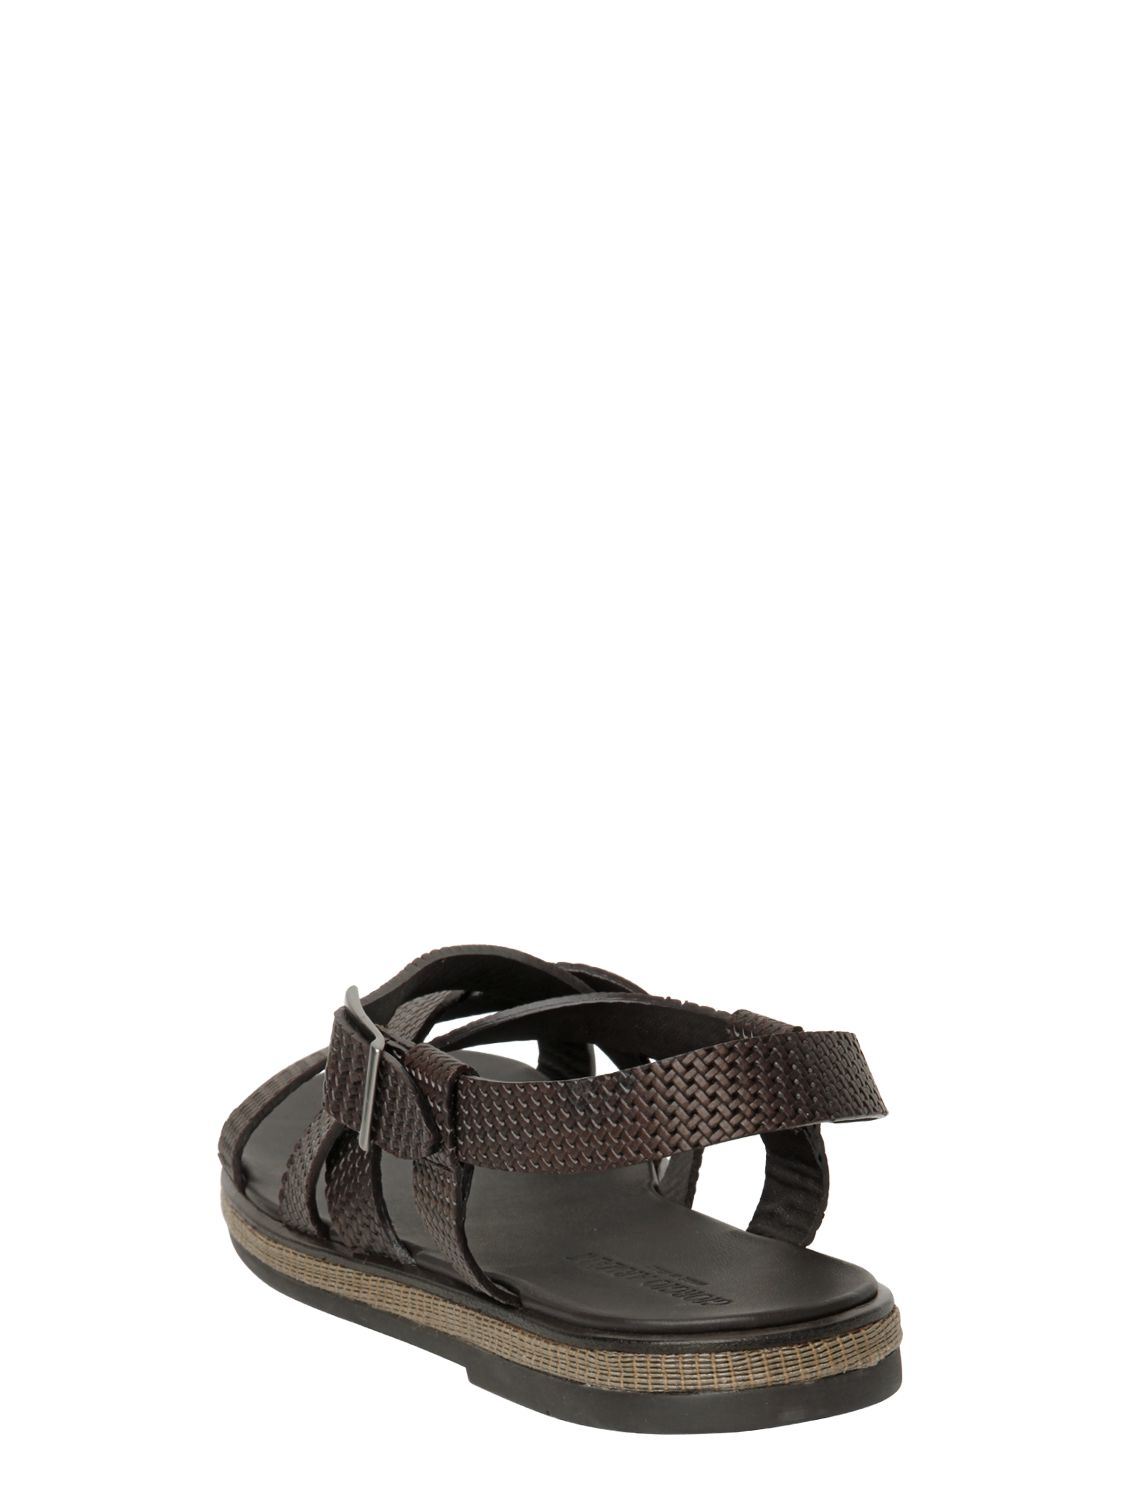 80826735aef5d0 Lyst - Giorgio Armani Woven Leather Sandals in Brown for Men